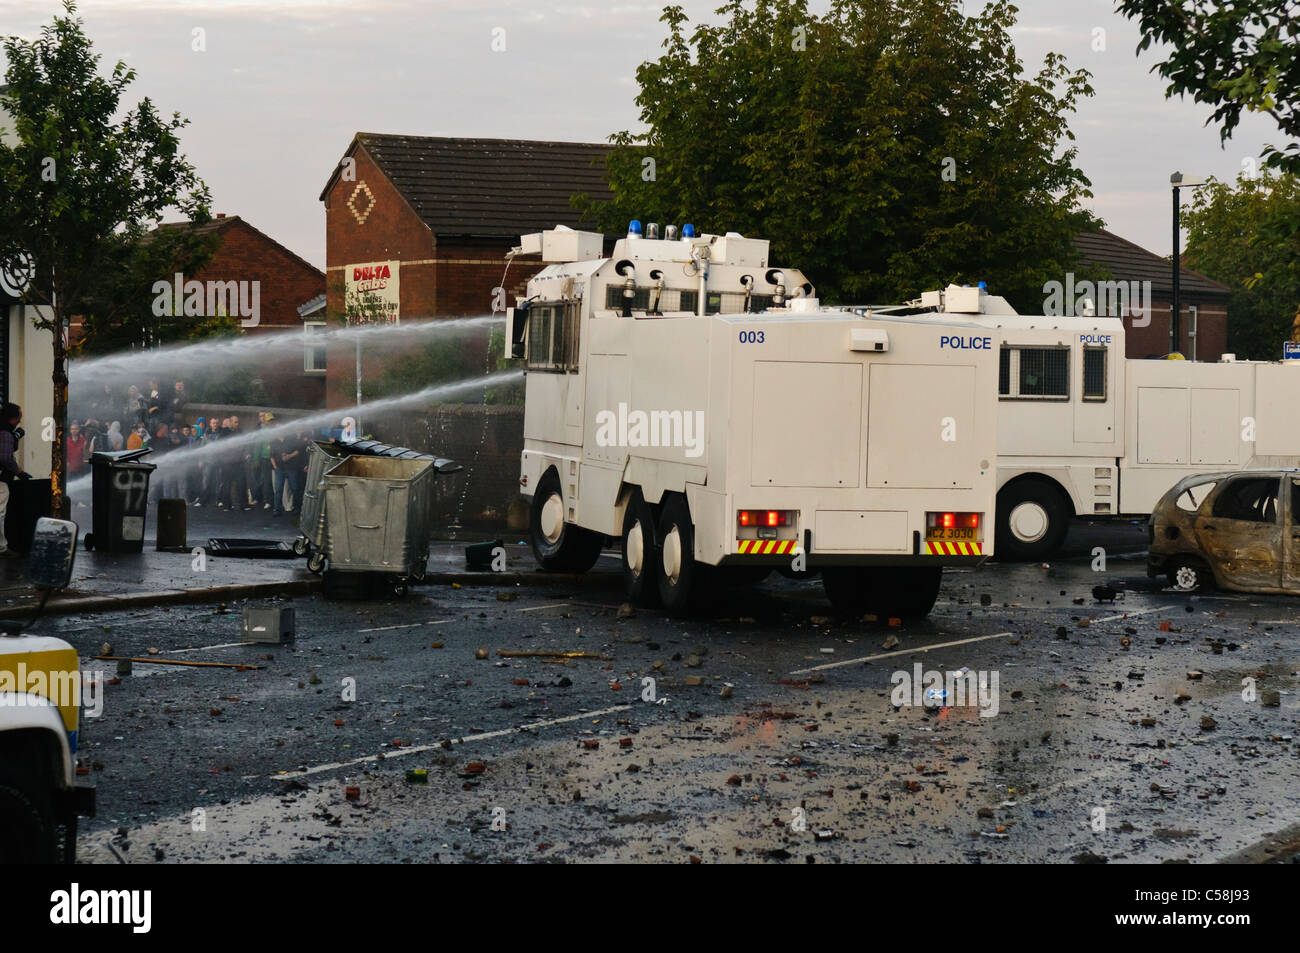 Police water cannon disperse rioters - Stock Image